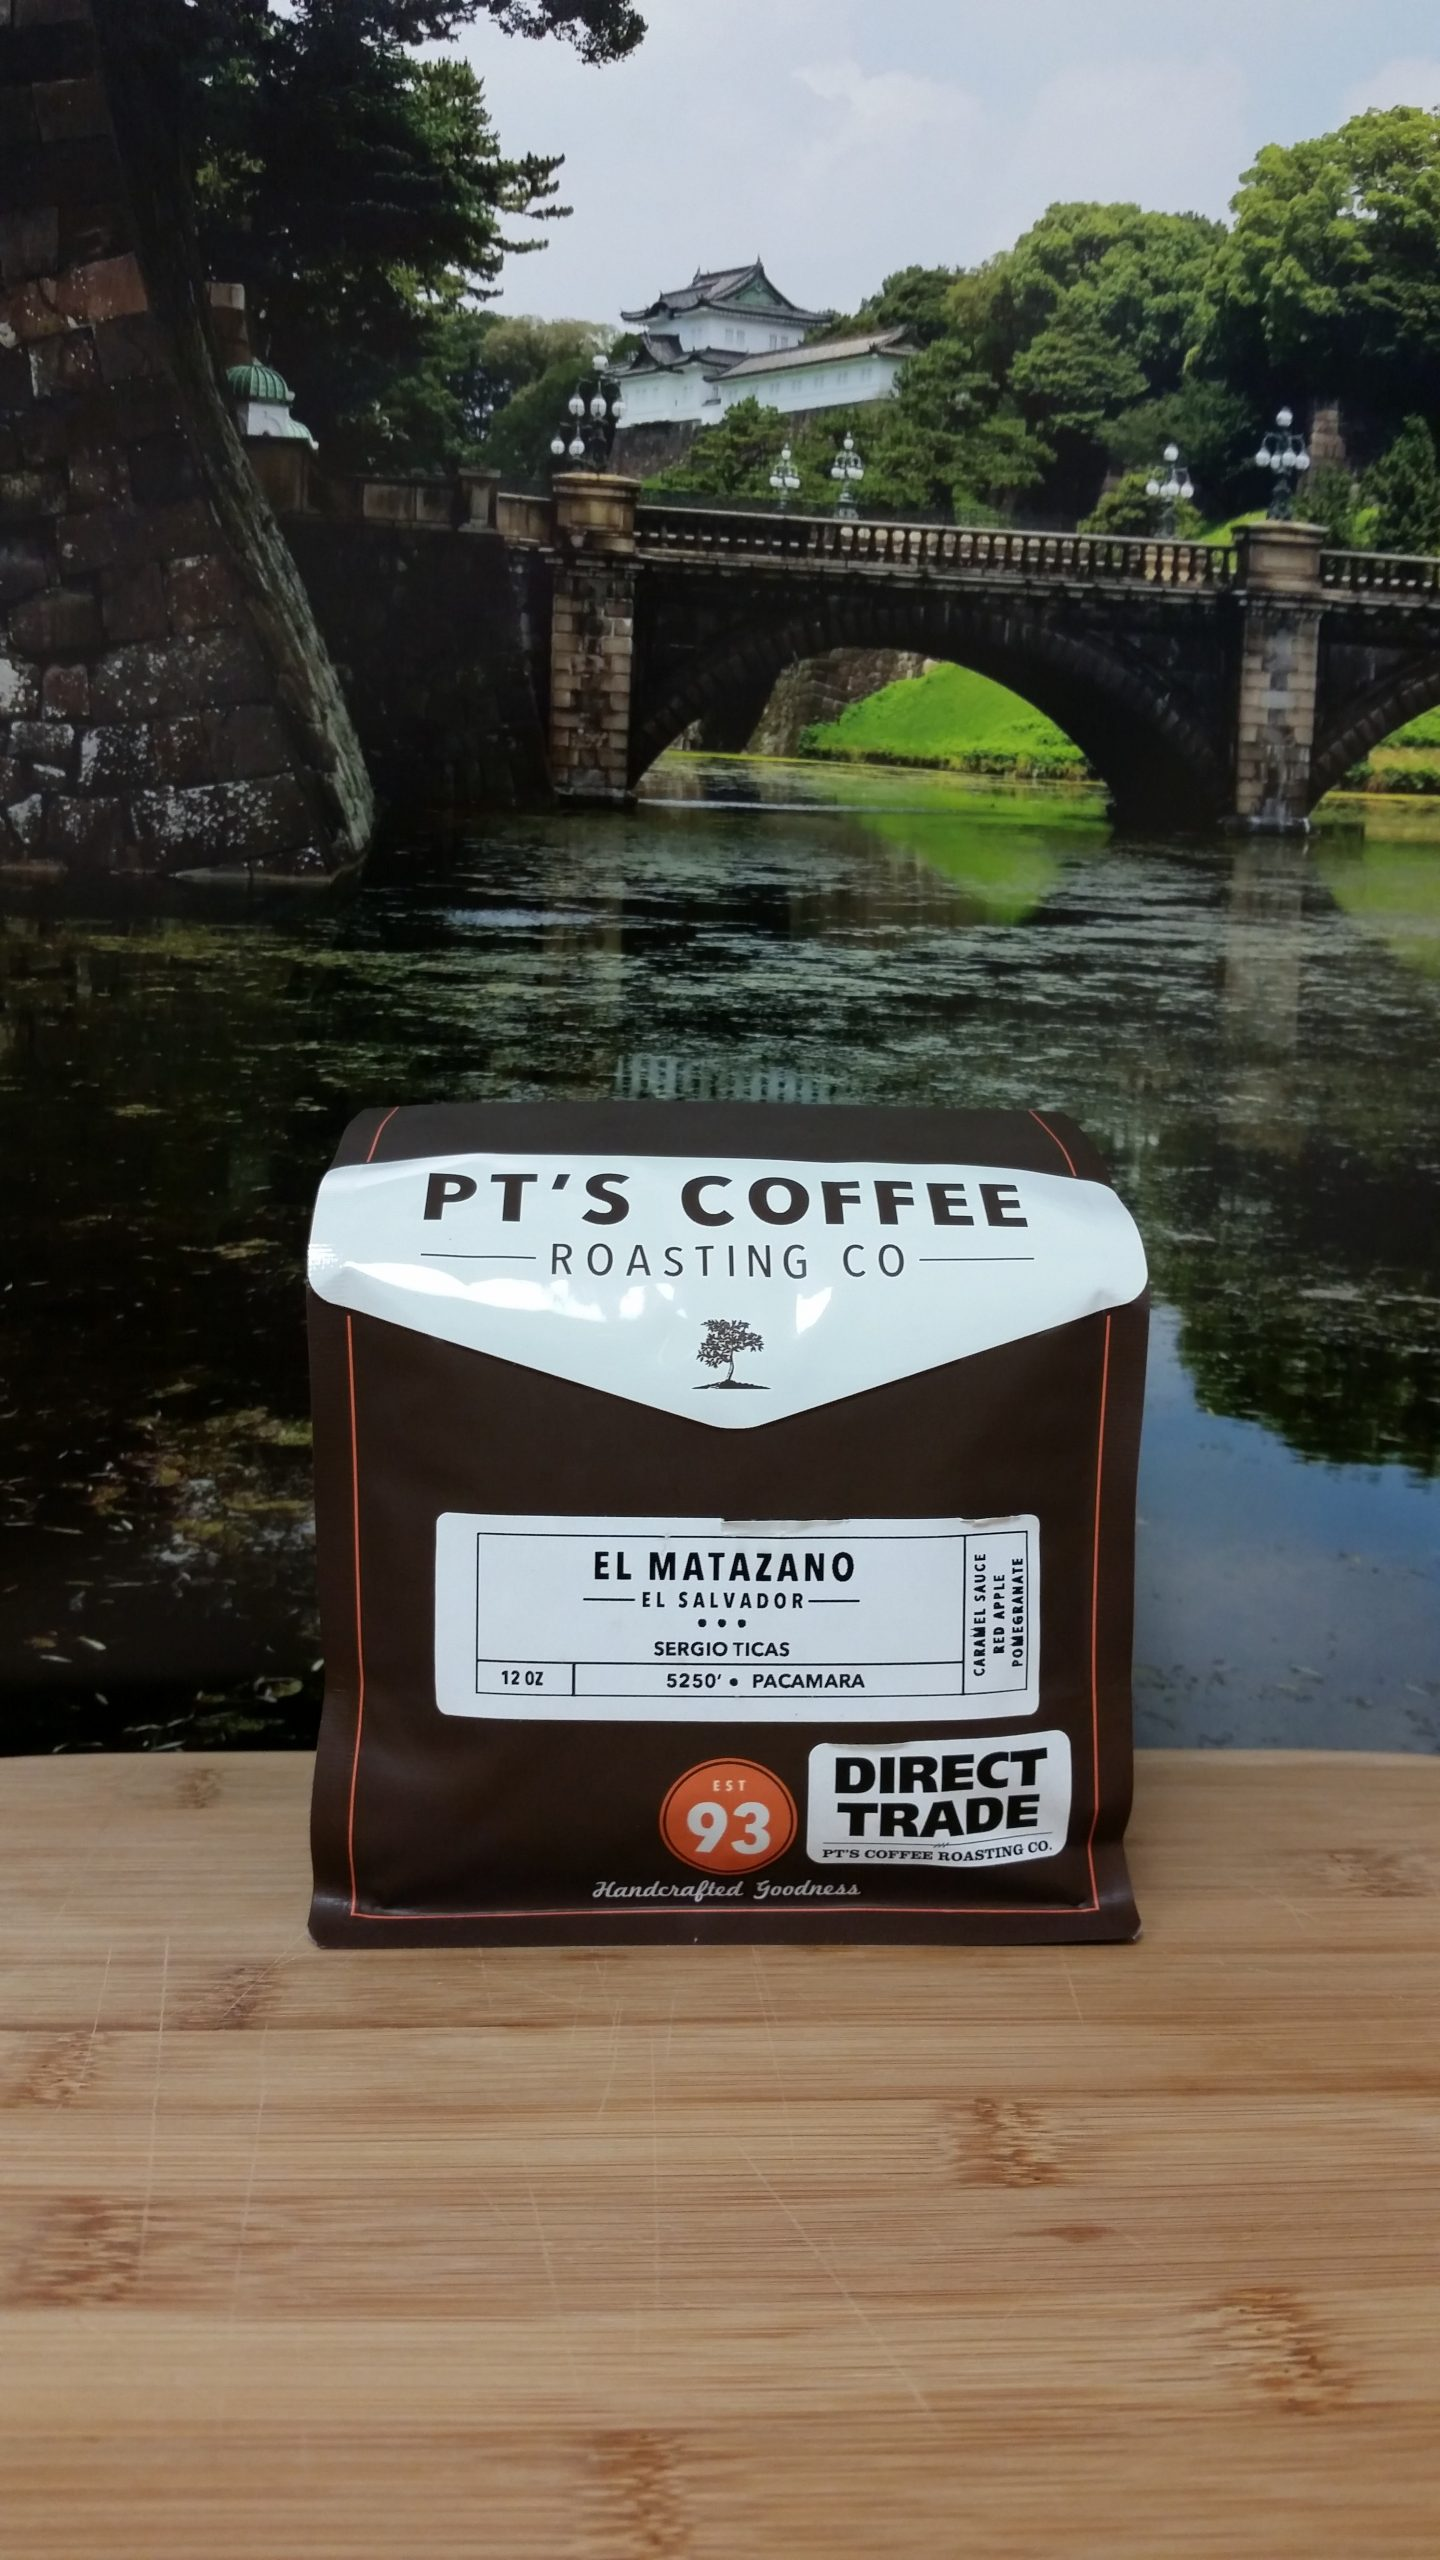 El Salvador El Matazano by PT's Coffee Roasting Co.